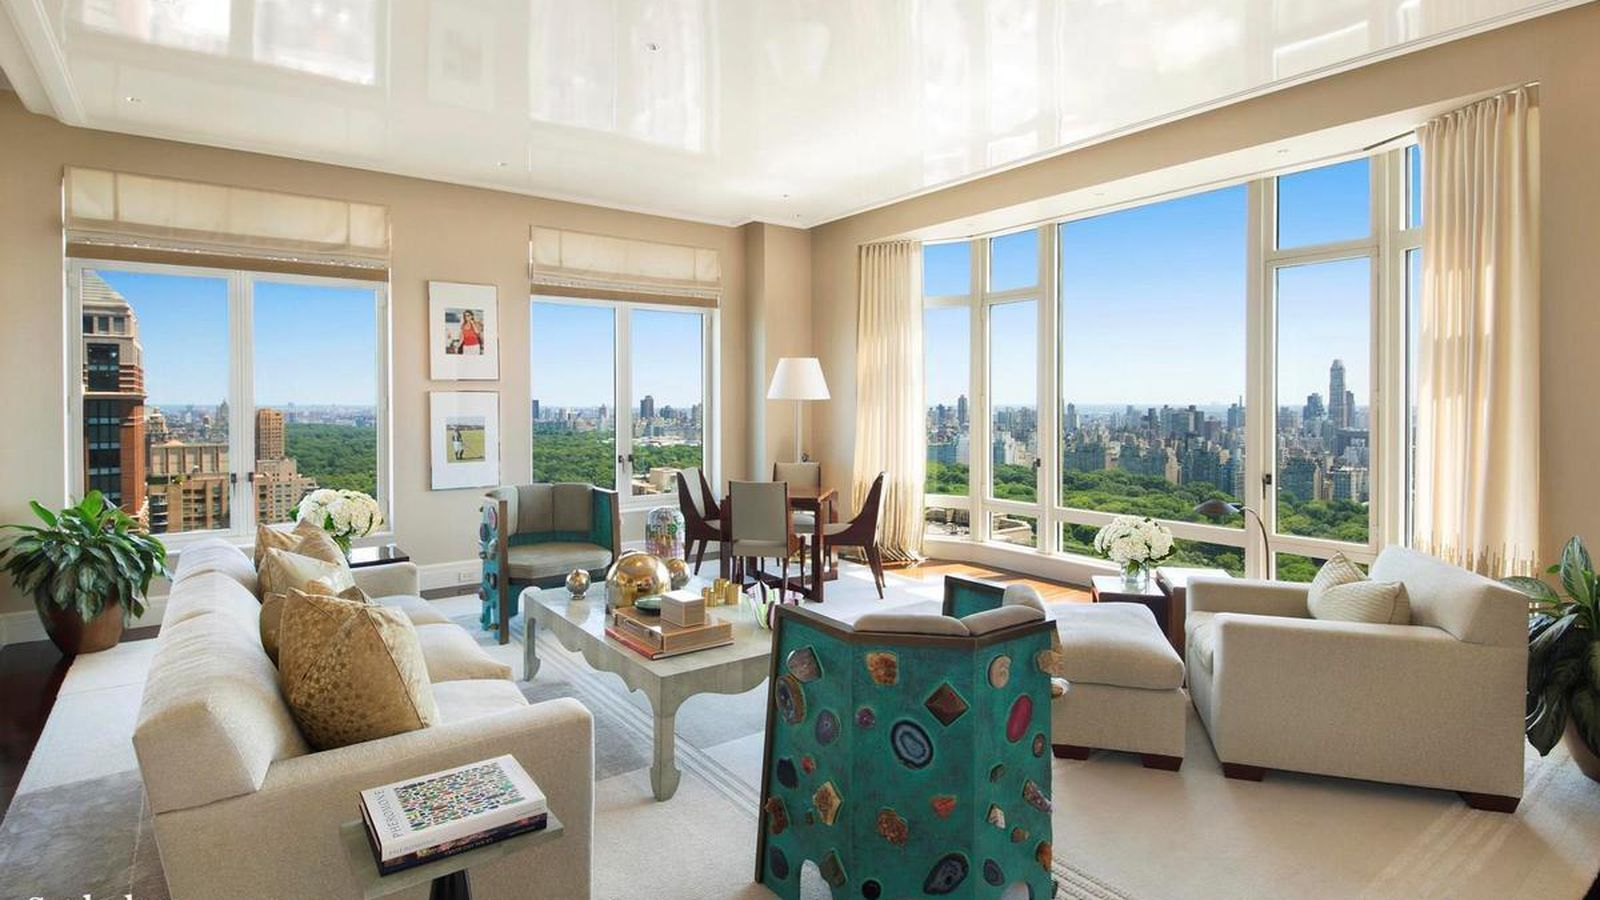 Venezuelan Banker Fetches 28m For 15 Central Park West